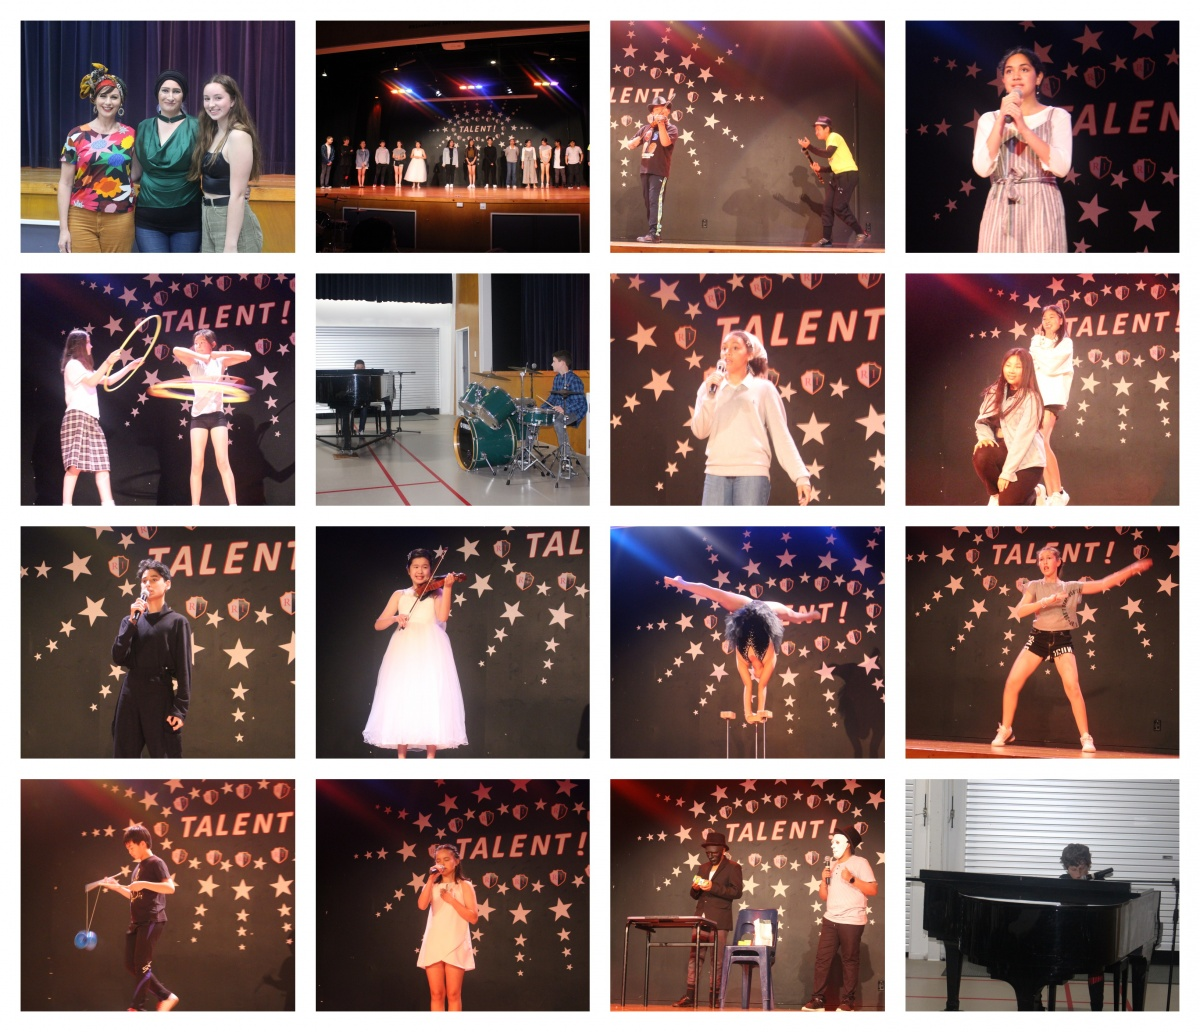 Talent Quest 2020 | Remuera Intermediate School - Quality education for  both local and international students, in Remuera, Auckland, New Zealand